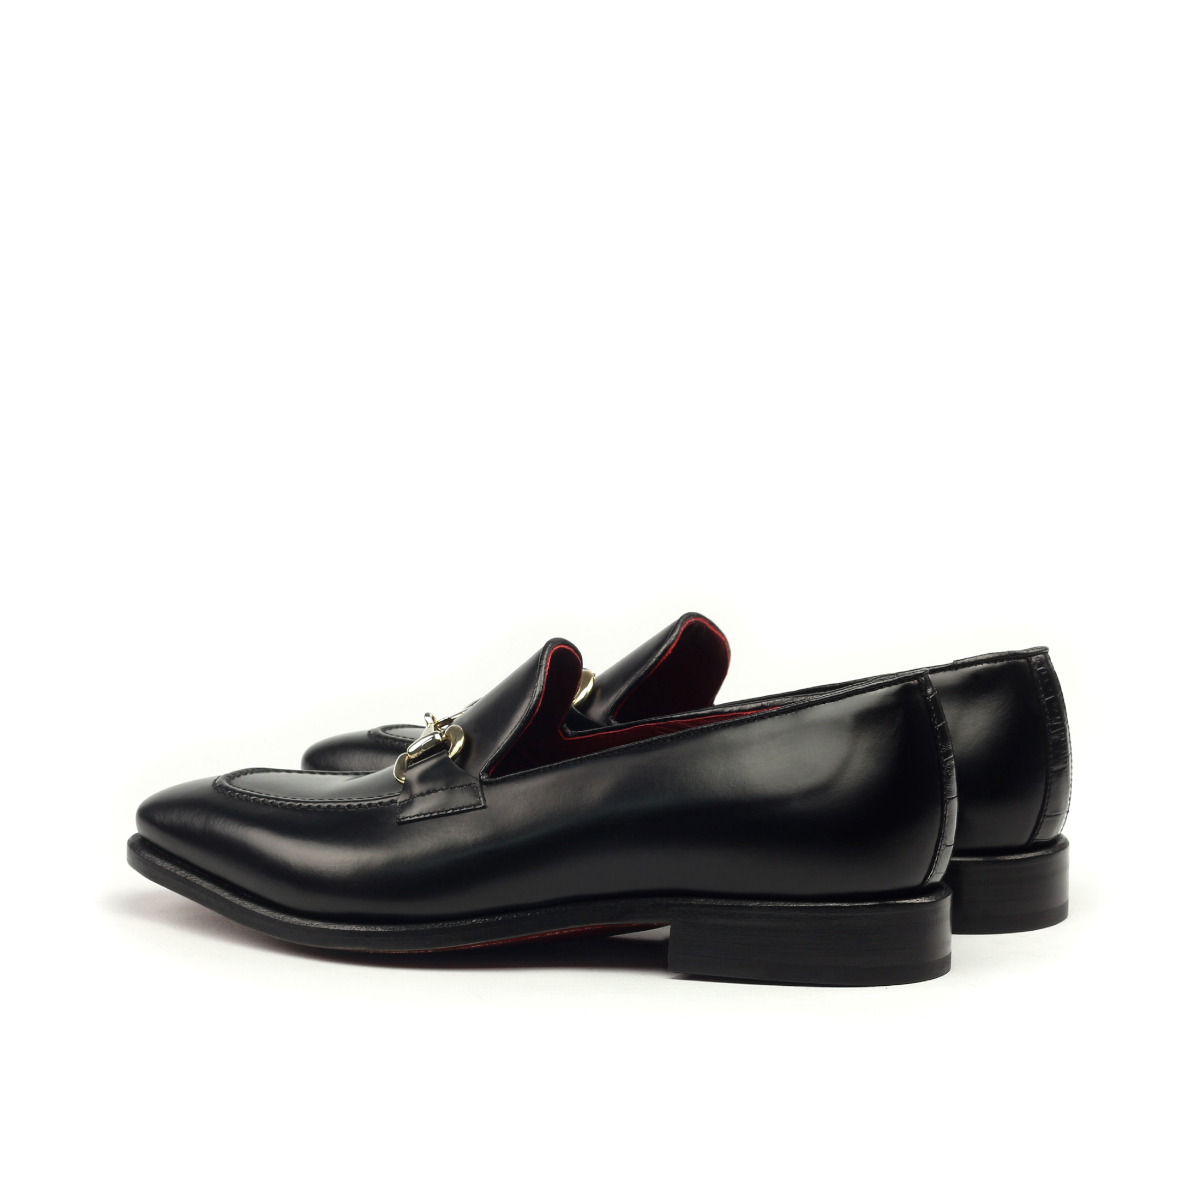 Black box calf horsebit gucci loafer